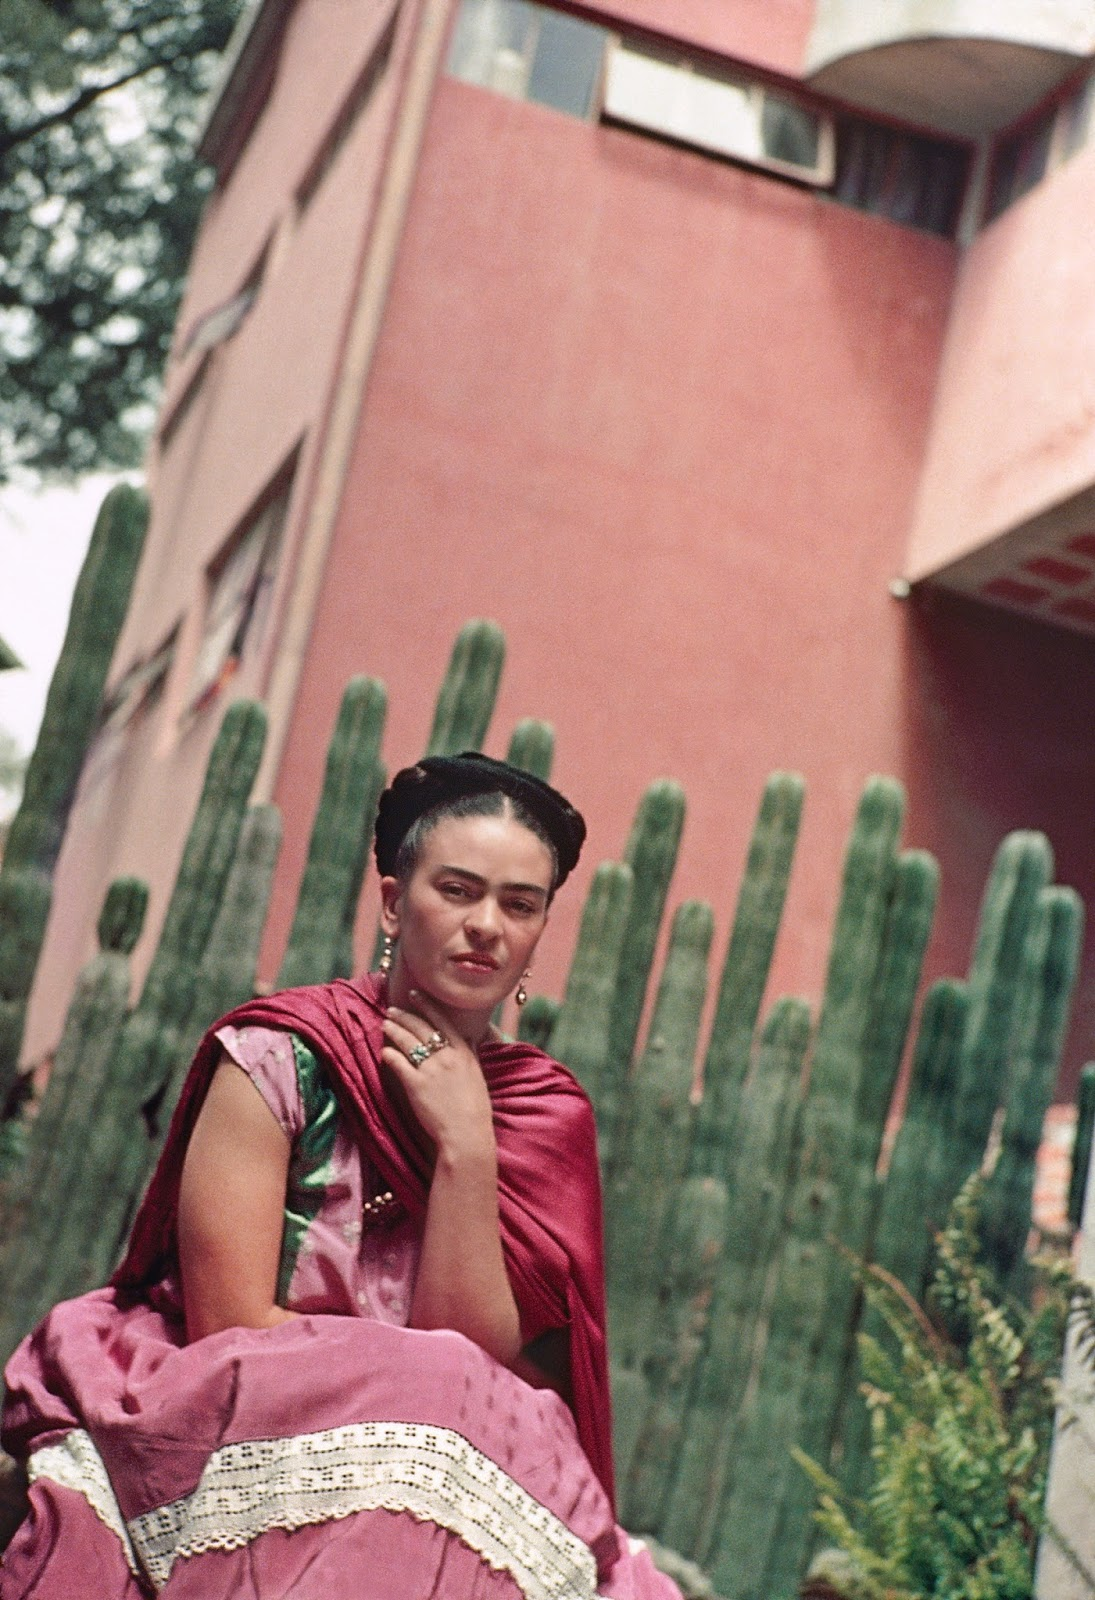 """frida kahlo s the love embrace of the universe essays Home essays frida kahlo - love embrace frida kahlo - love embrace """"the love embrace of the universe"""", has frida kahlo holding a baby frida kahlo essay."""